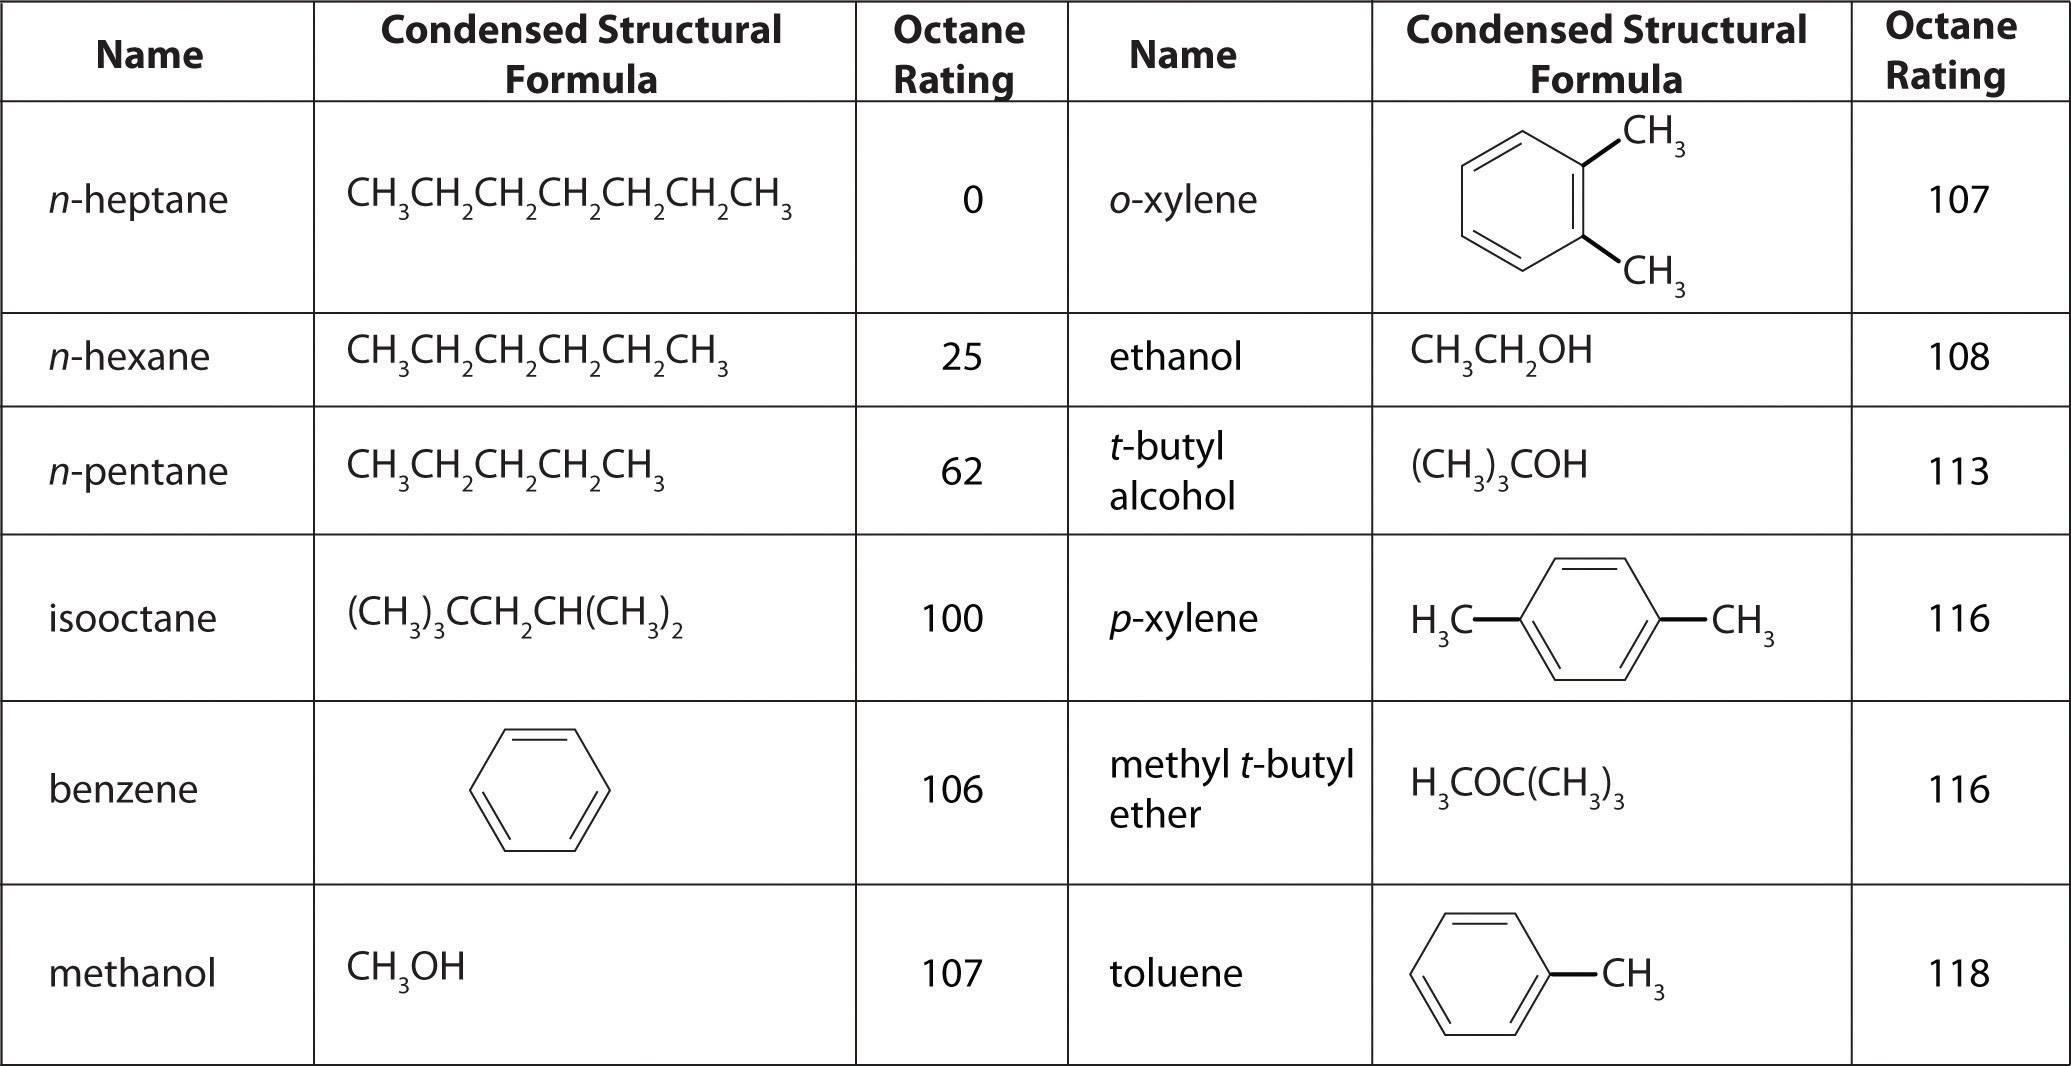 Figure 2 19 The Octane Ratings  N Pentane Lewis Structure